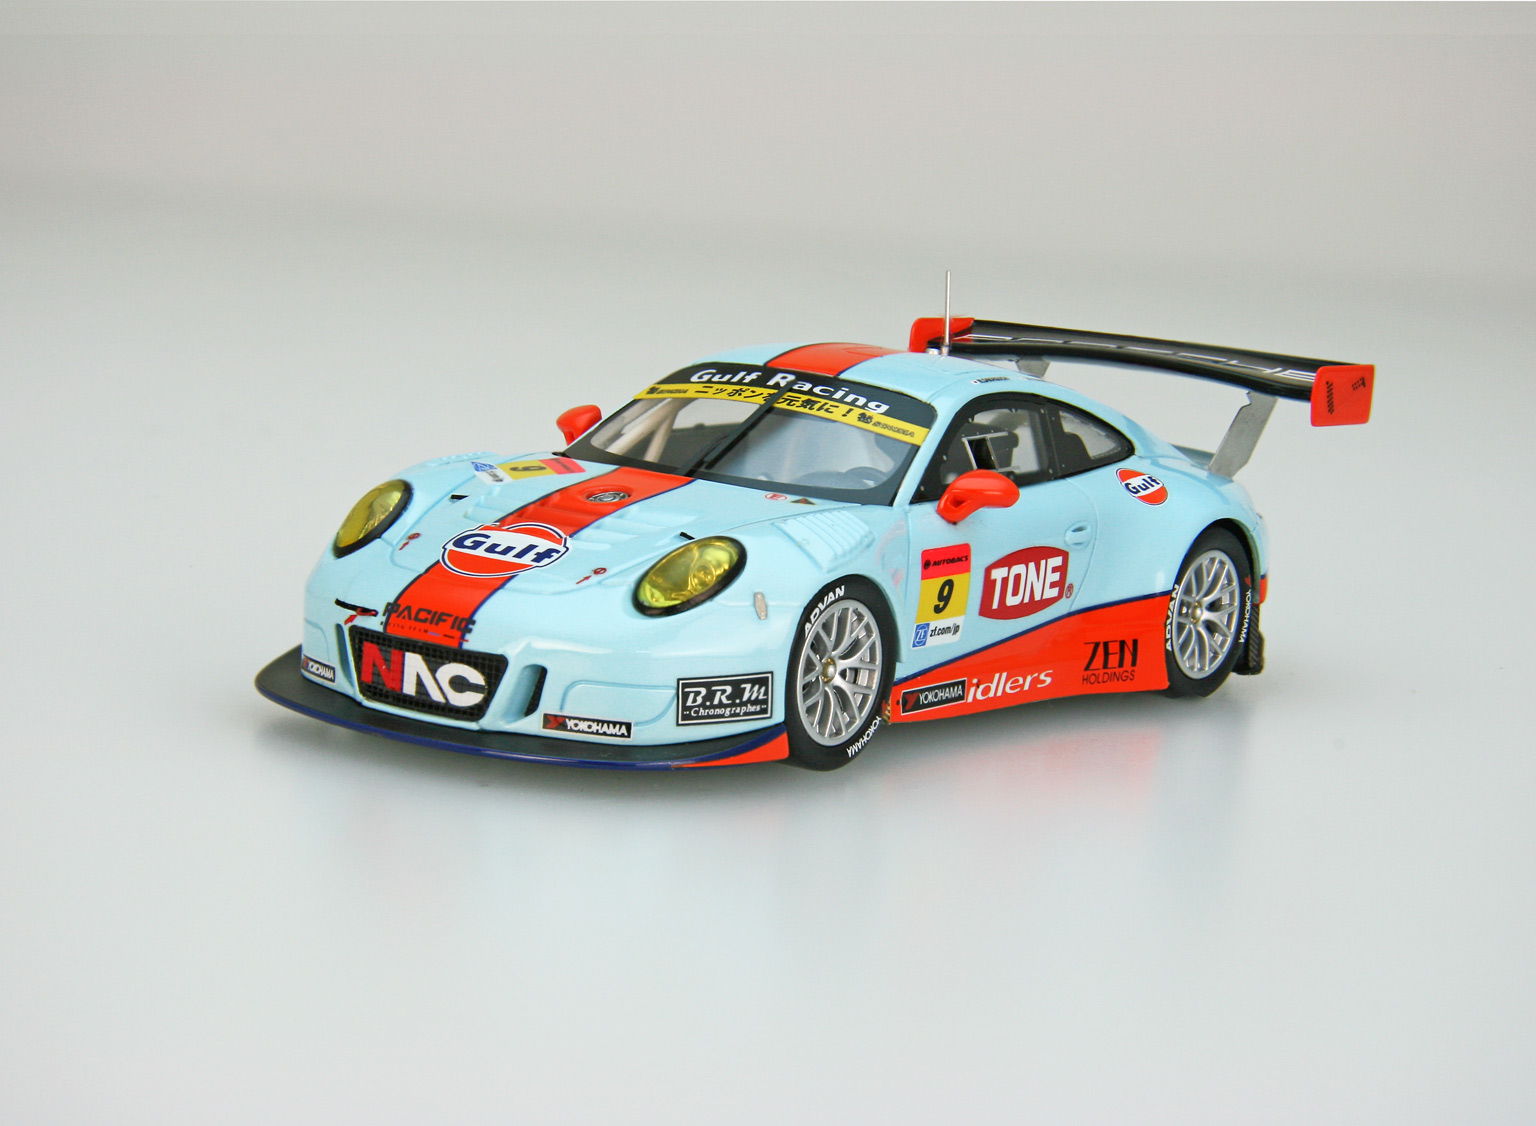 【45413】GULF NAC PORSCHE 911 SUPER GT GT300 2016 No.9 [RESIN]